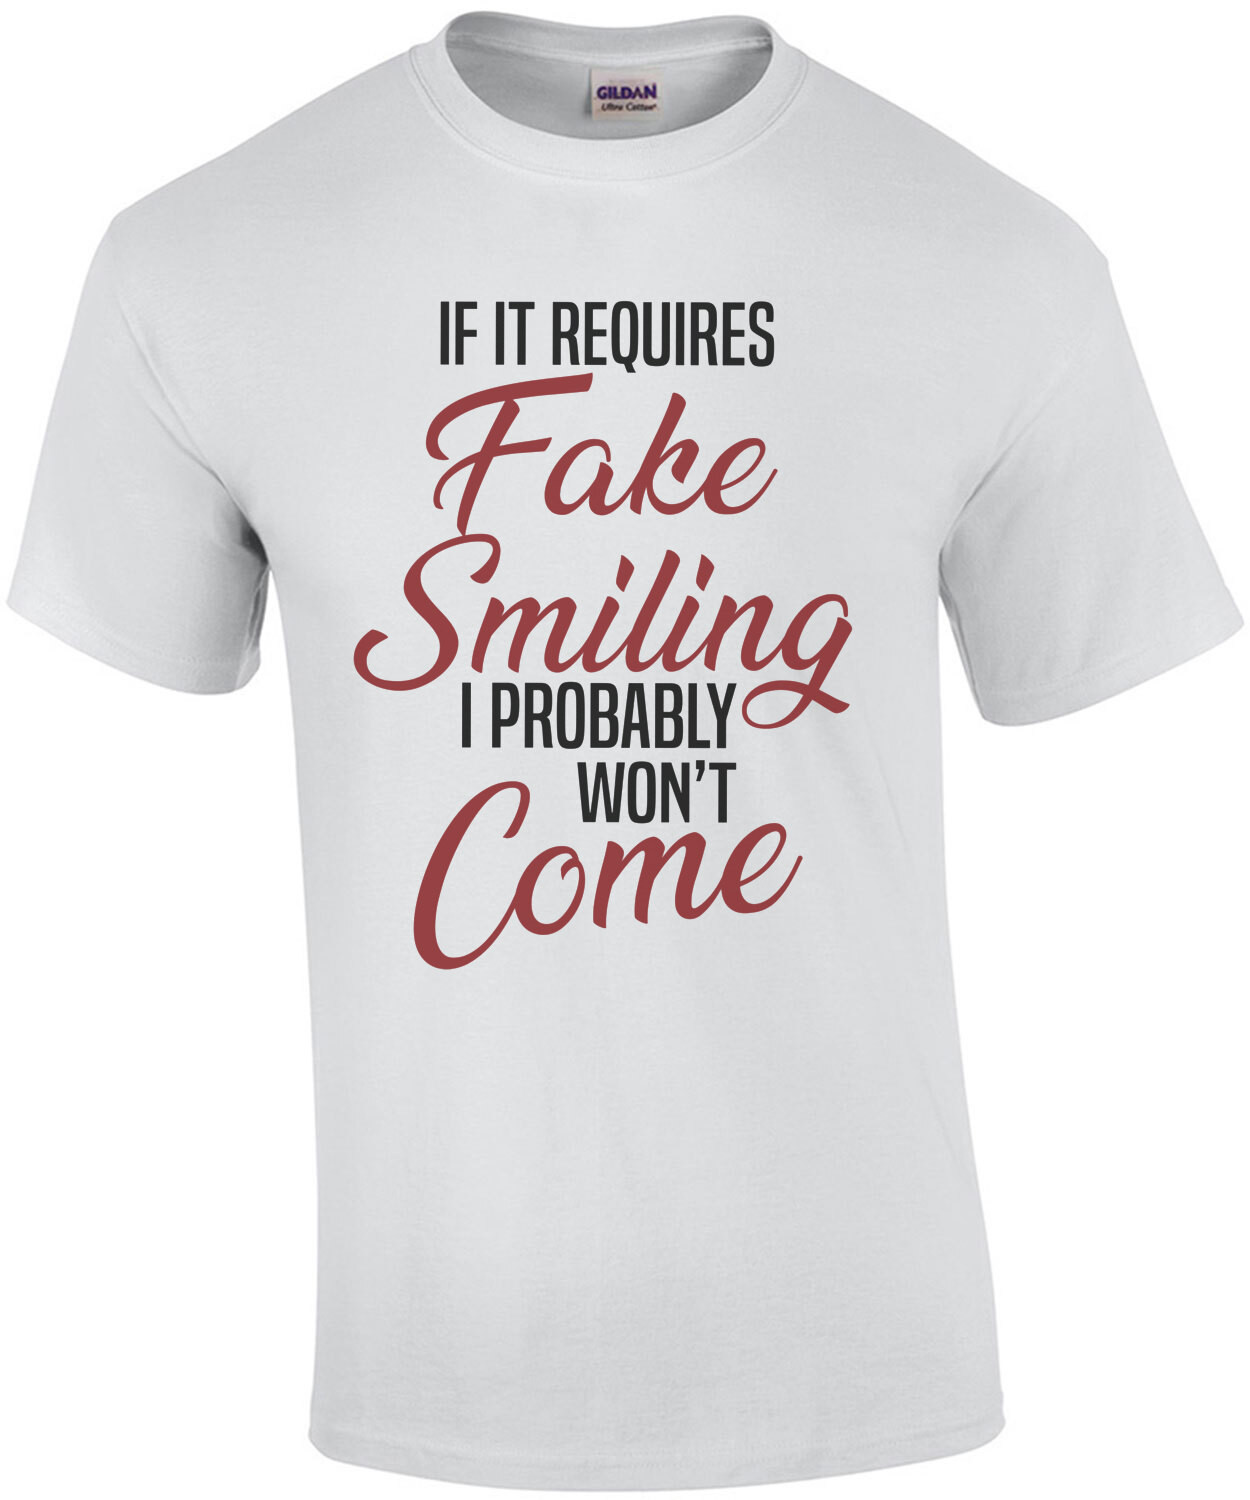 If it requires fake smiling I probably won't come. - Funny Sarcastic T-Shirt